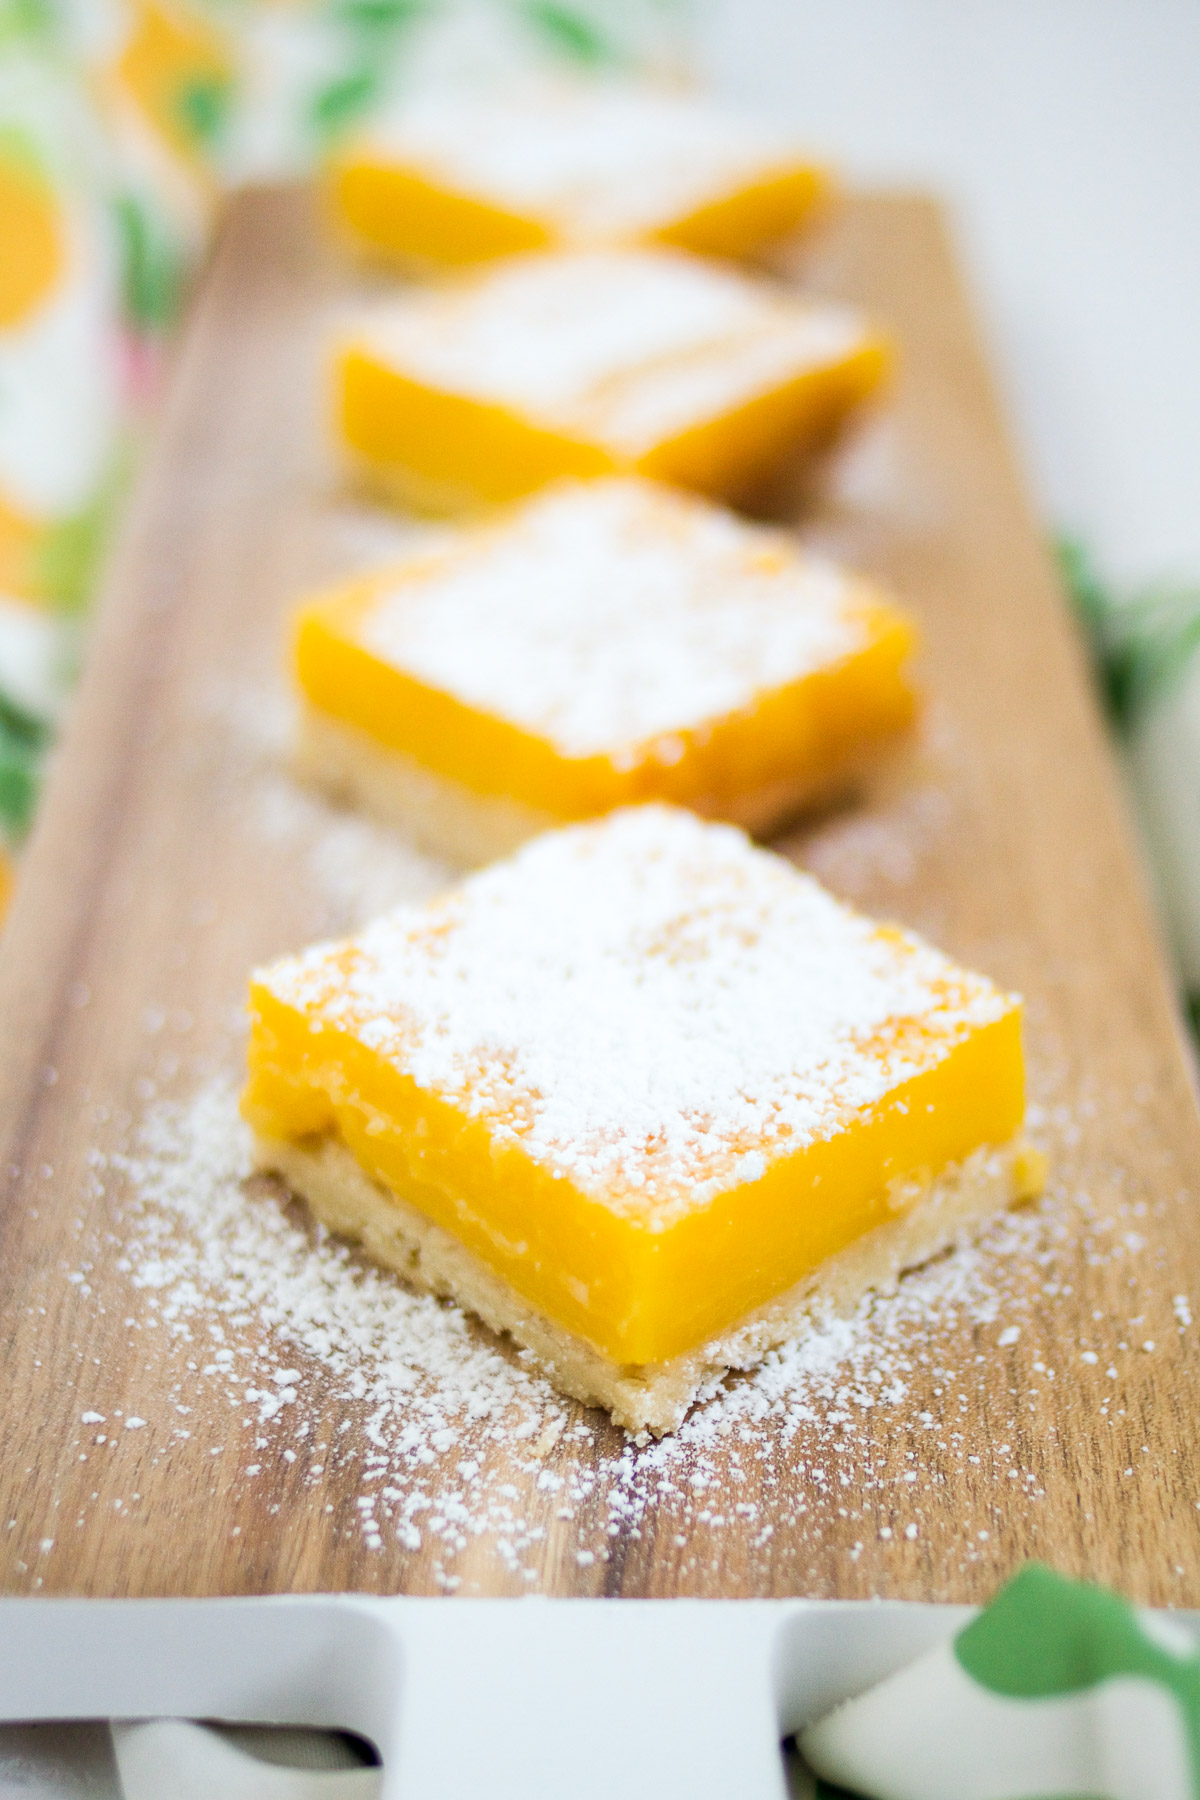 Make these amazing citrus bars with your favorite citrus fruit!